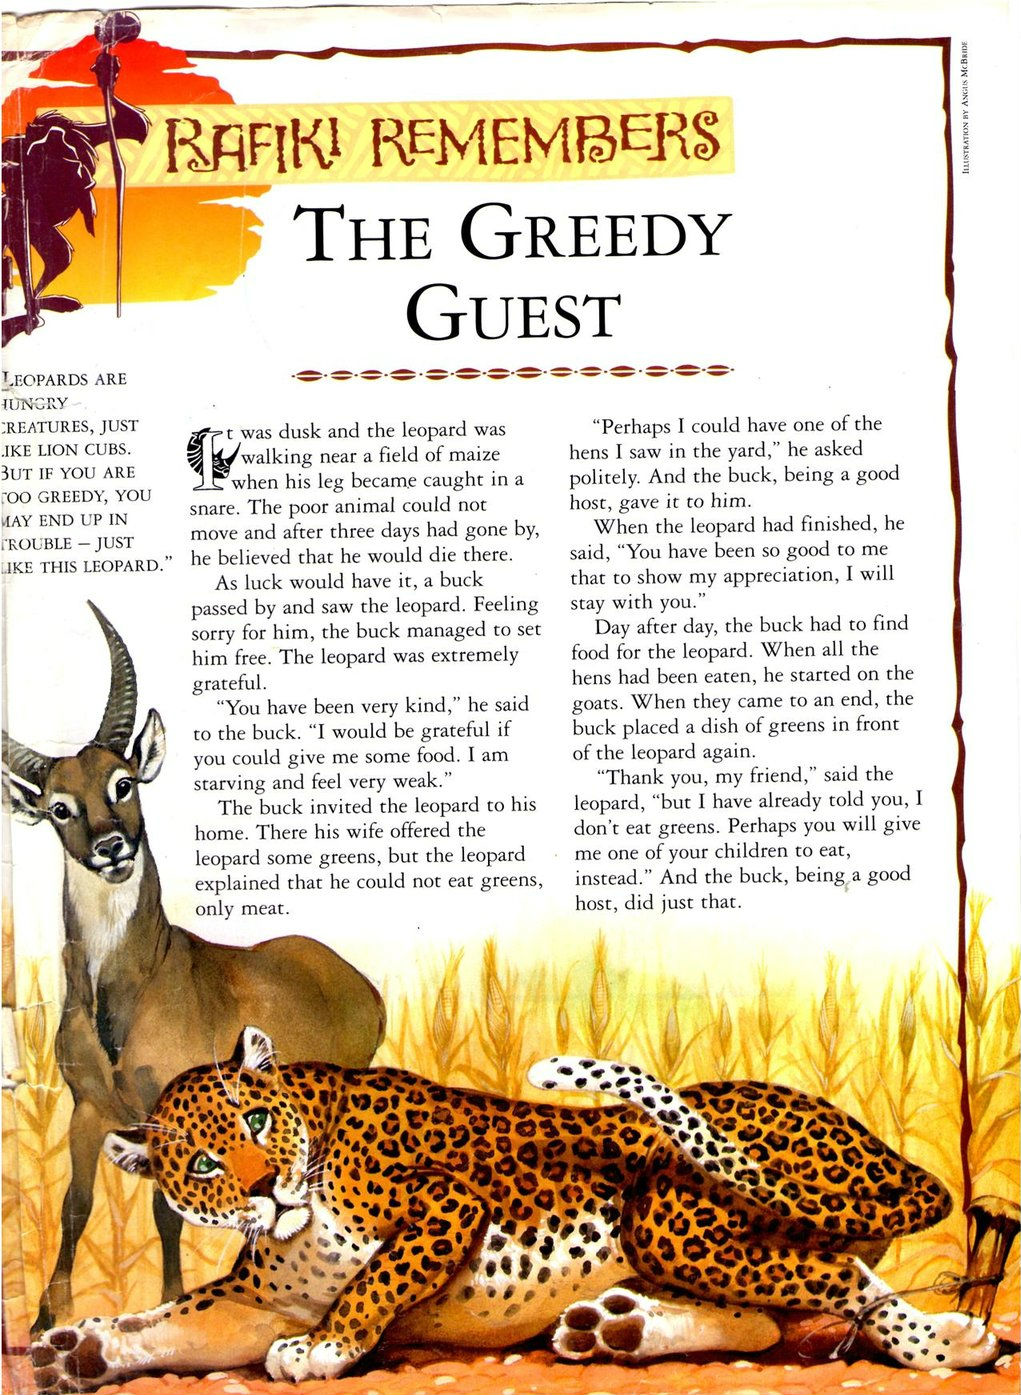 The Greedy Guest